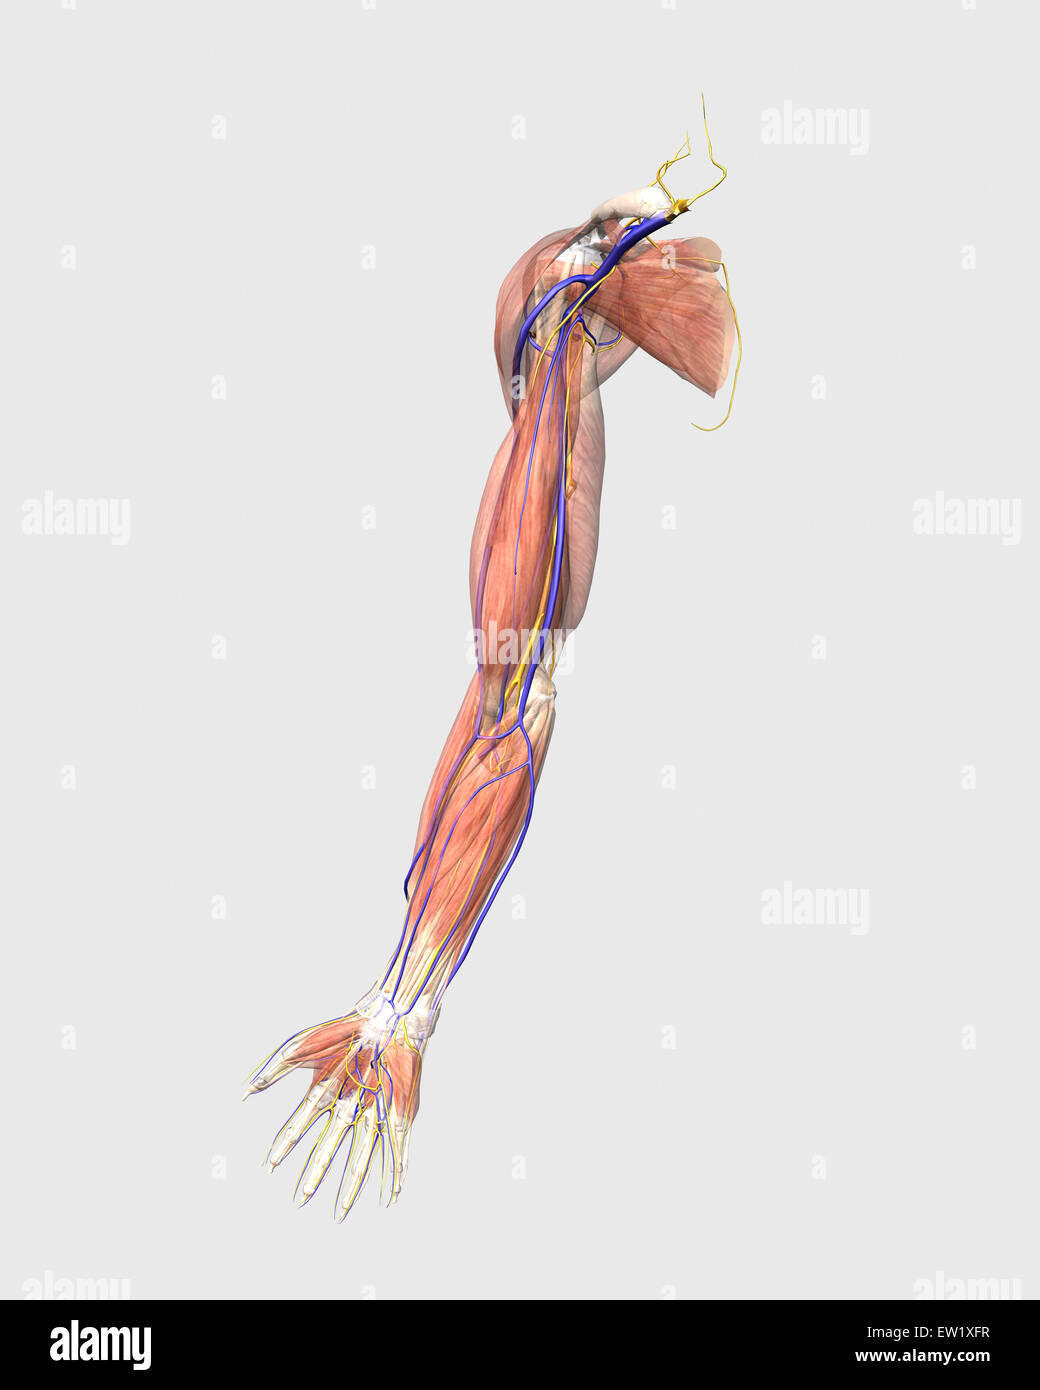 Human Arm Muscles Stock Photos Human Arm Muscles Stock Images Alamy